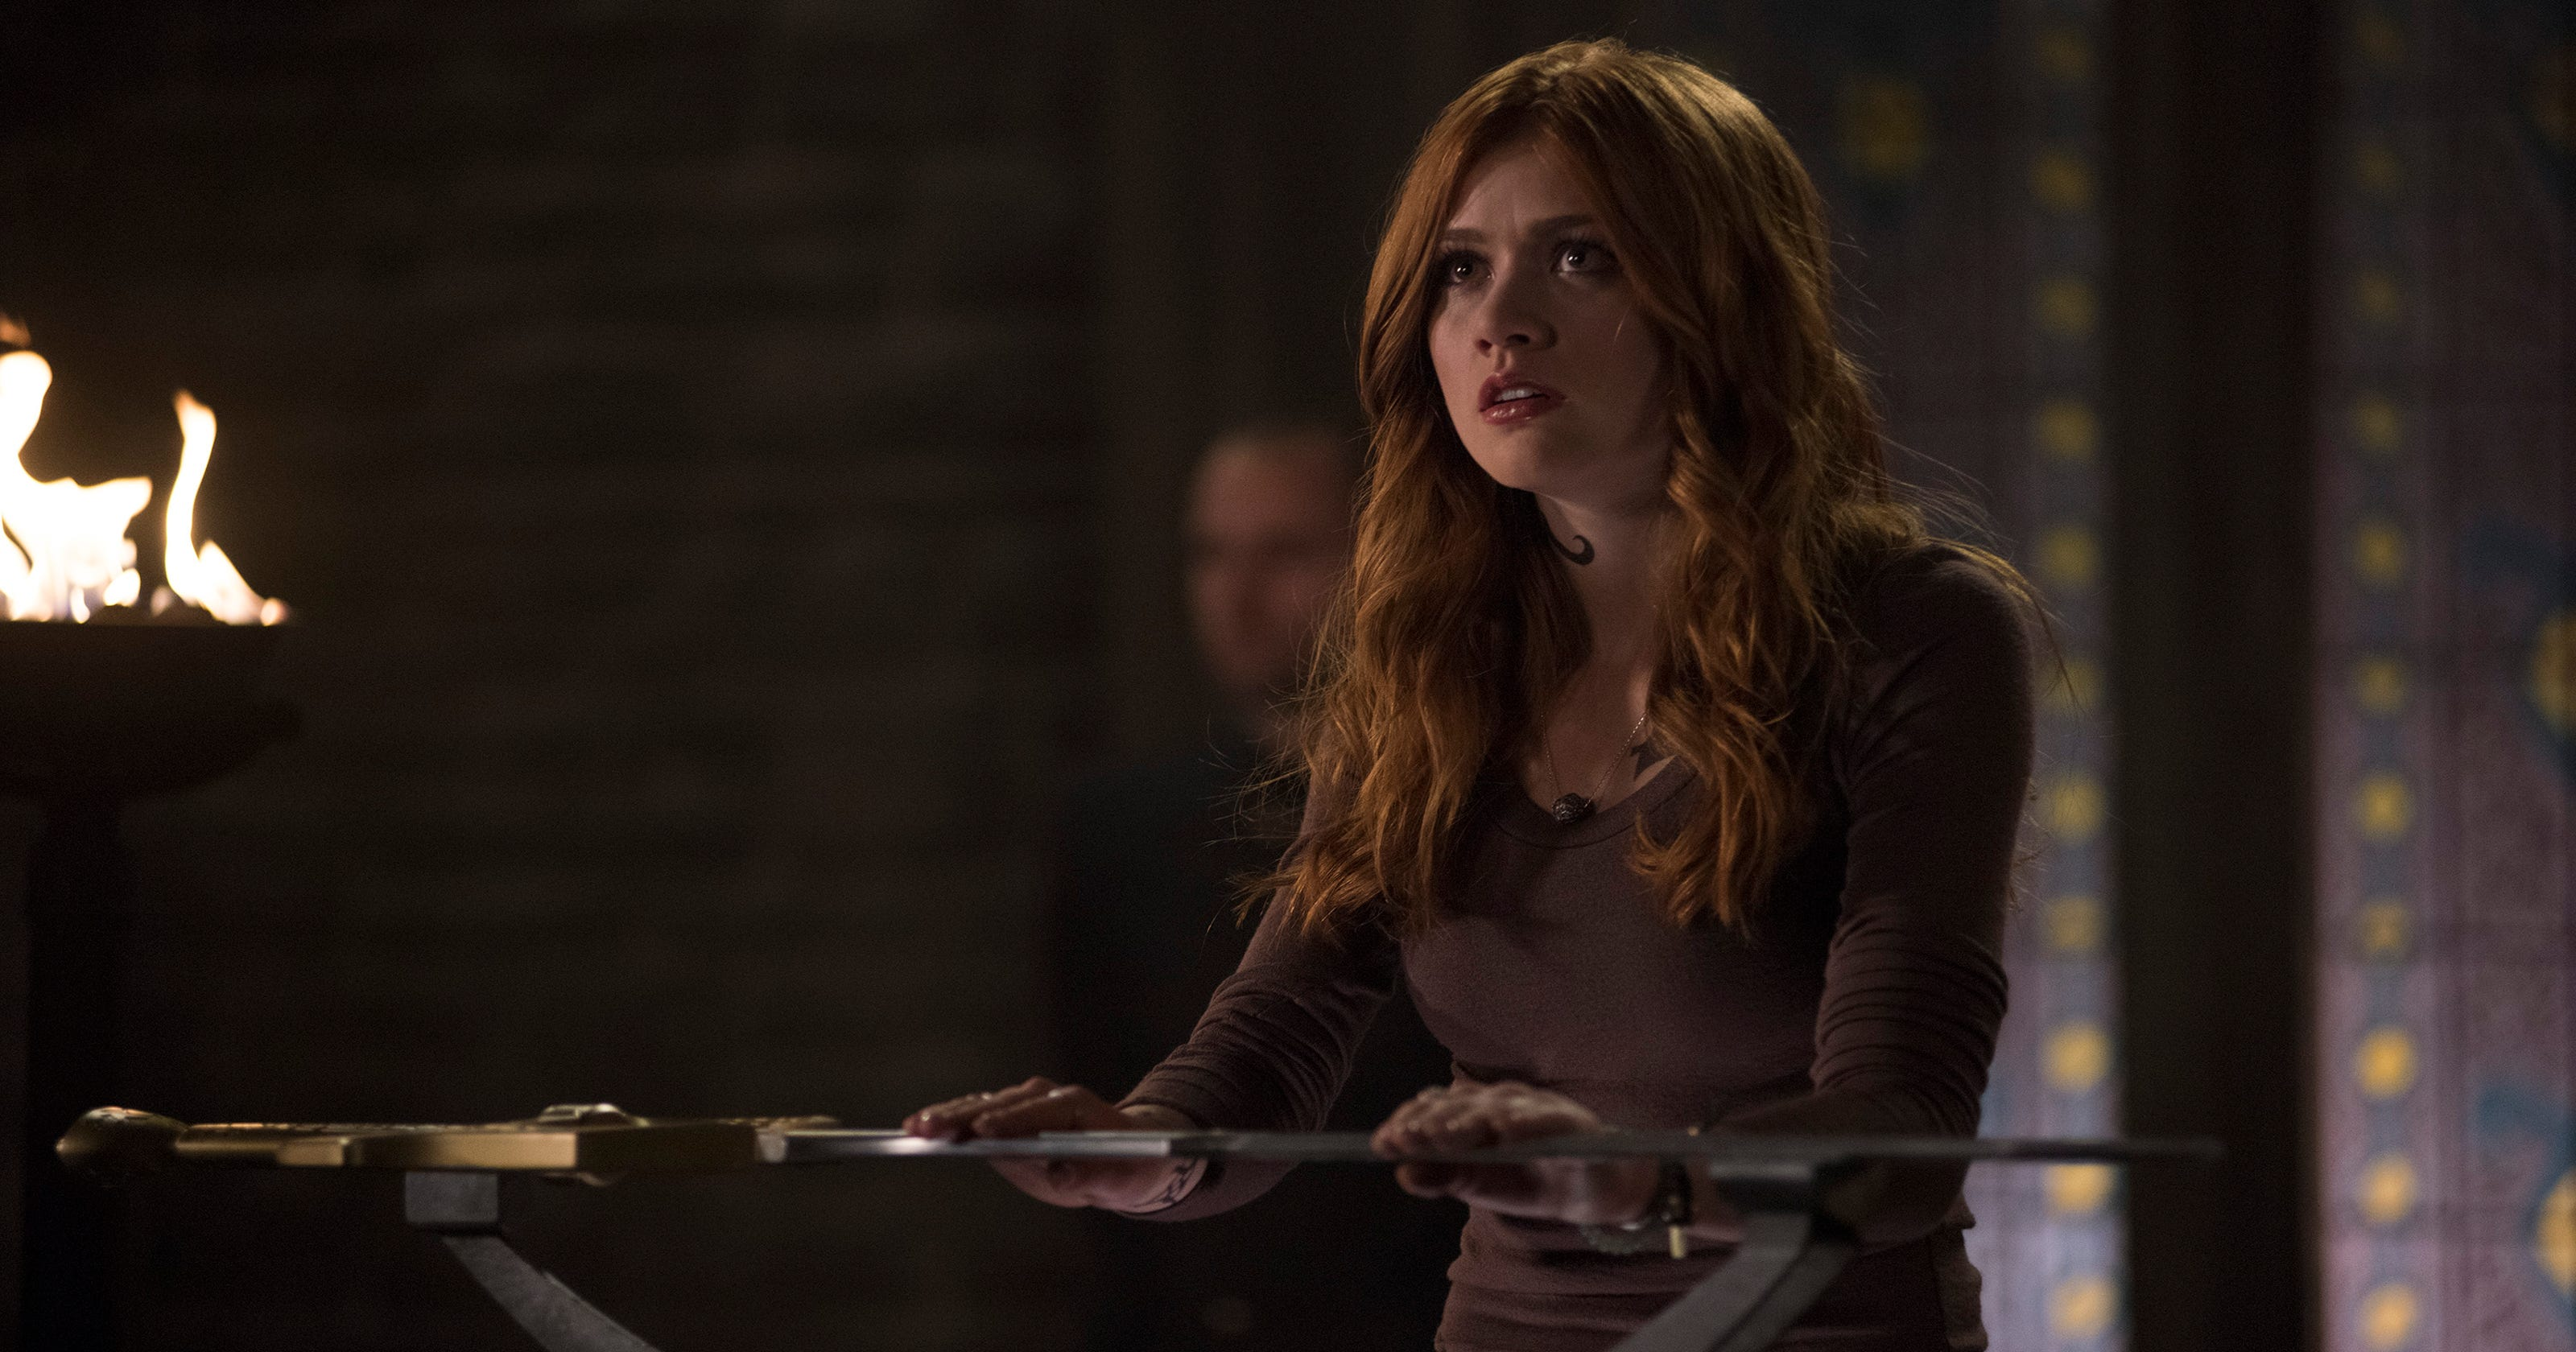 Shadowhunters' canceled, cast and fans react